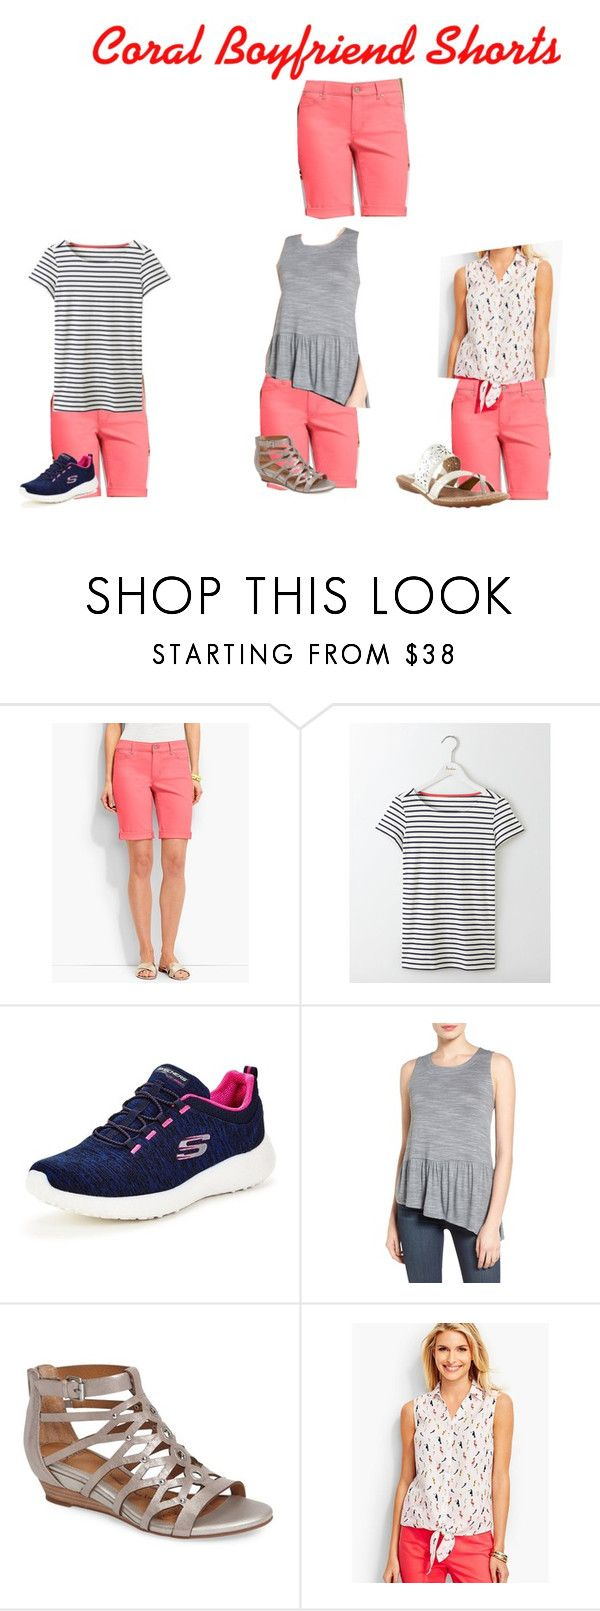 """""""Coral Shorts Outfits"""" by jctkoontz on Polyvore featuring Talbots, Boden, Skechers, Gibson, Söfft and b.o.c. Børn Concept"""